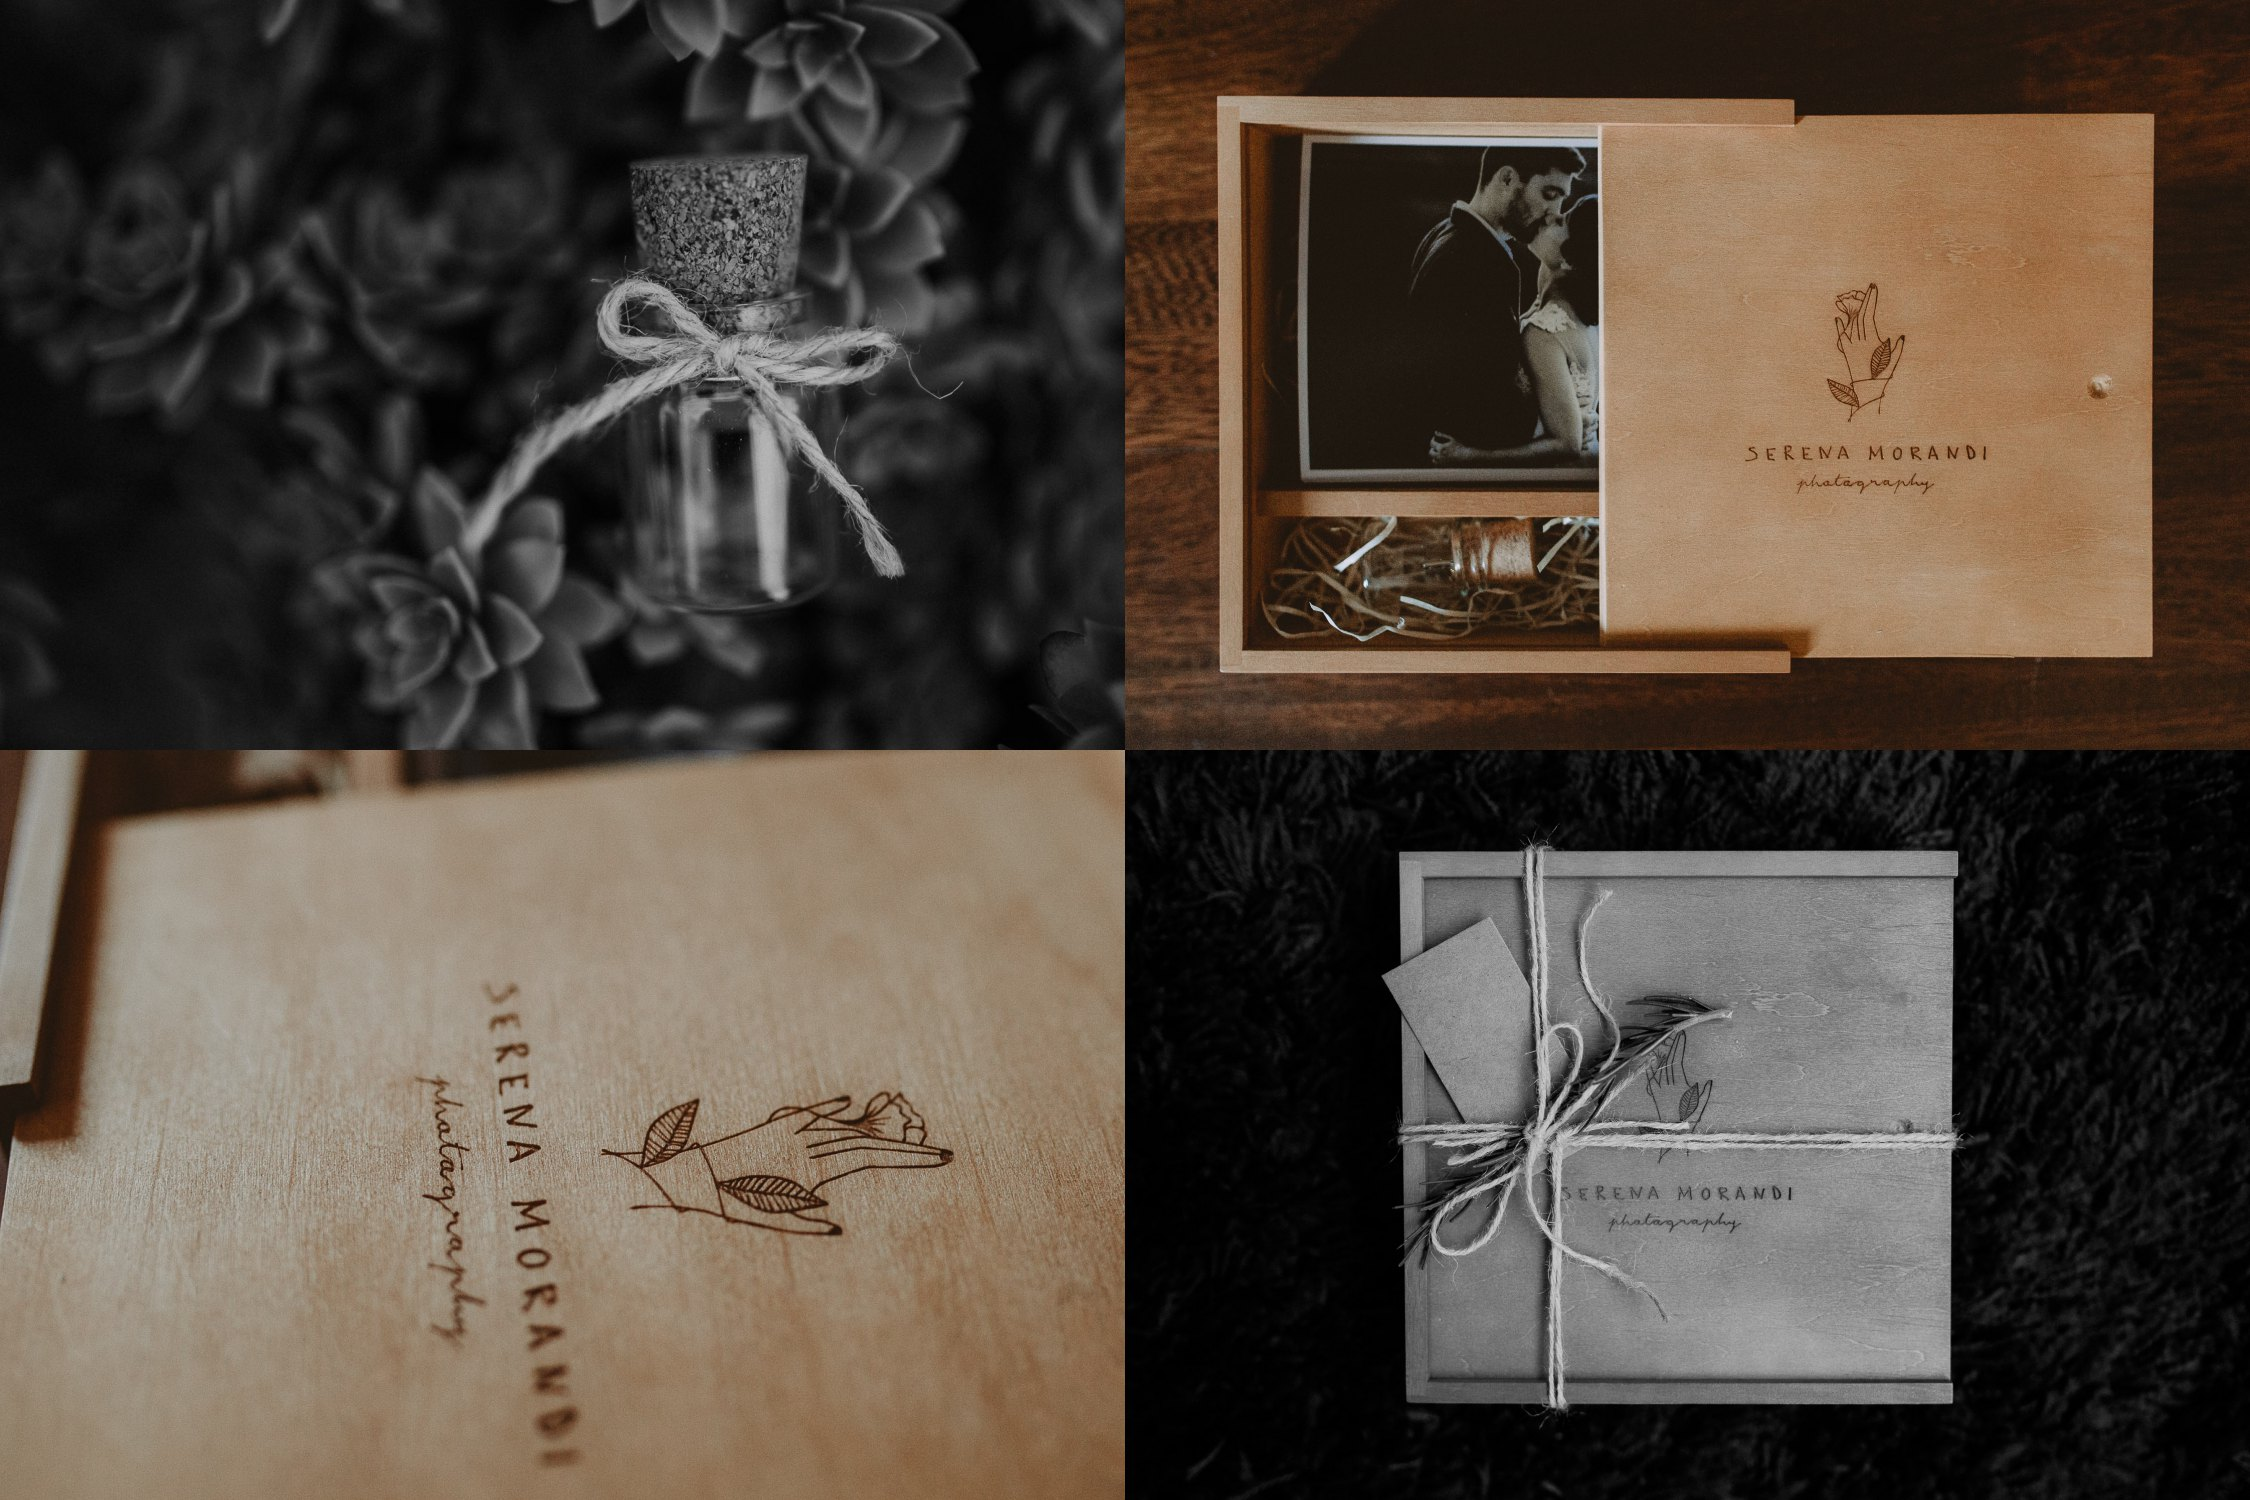 Packaging by Serena Morandi Photography